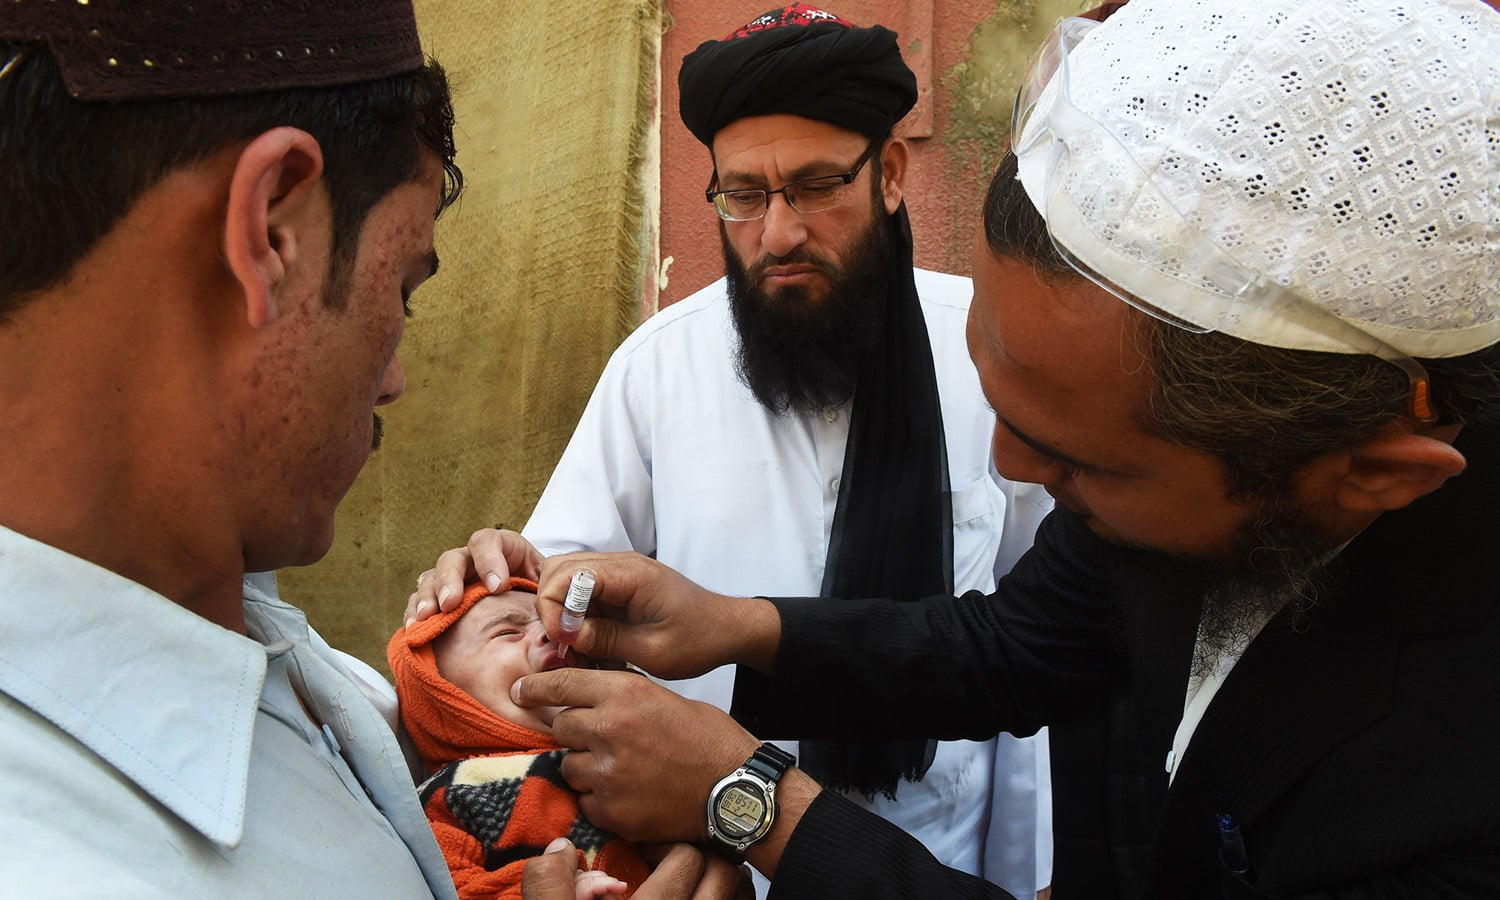 A health worker administers polio drops to a child as government appointed Islamic cleric Maulana Umar Sadiq (C) looks on during a door-to-door polio immunisation campaign in the predominantly Pashtun district of Korangi in Karachi.—AFP